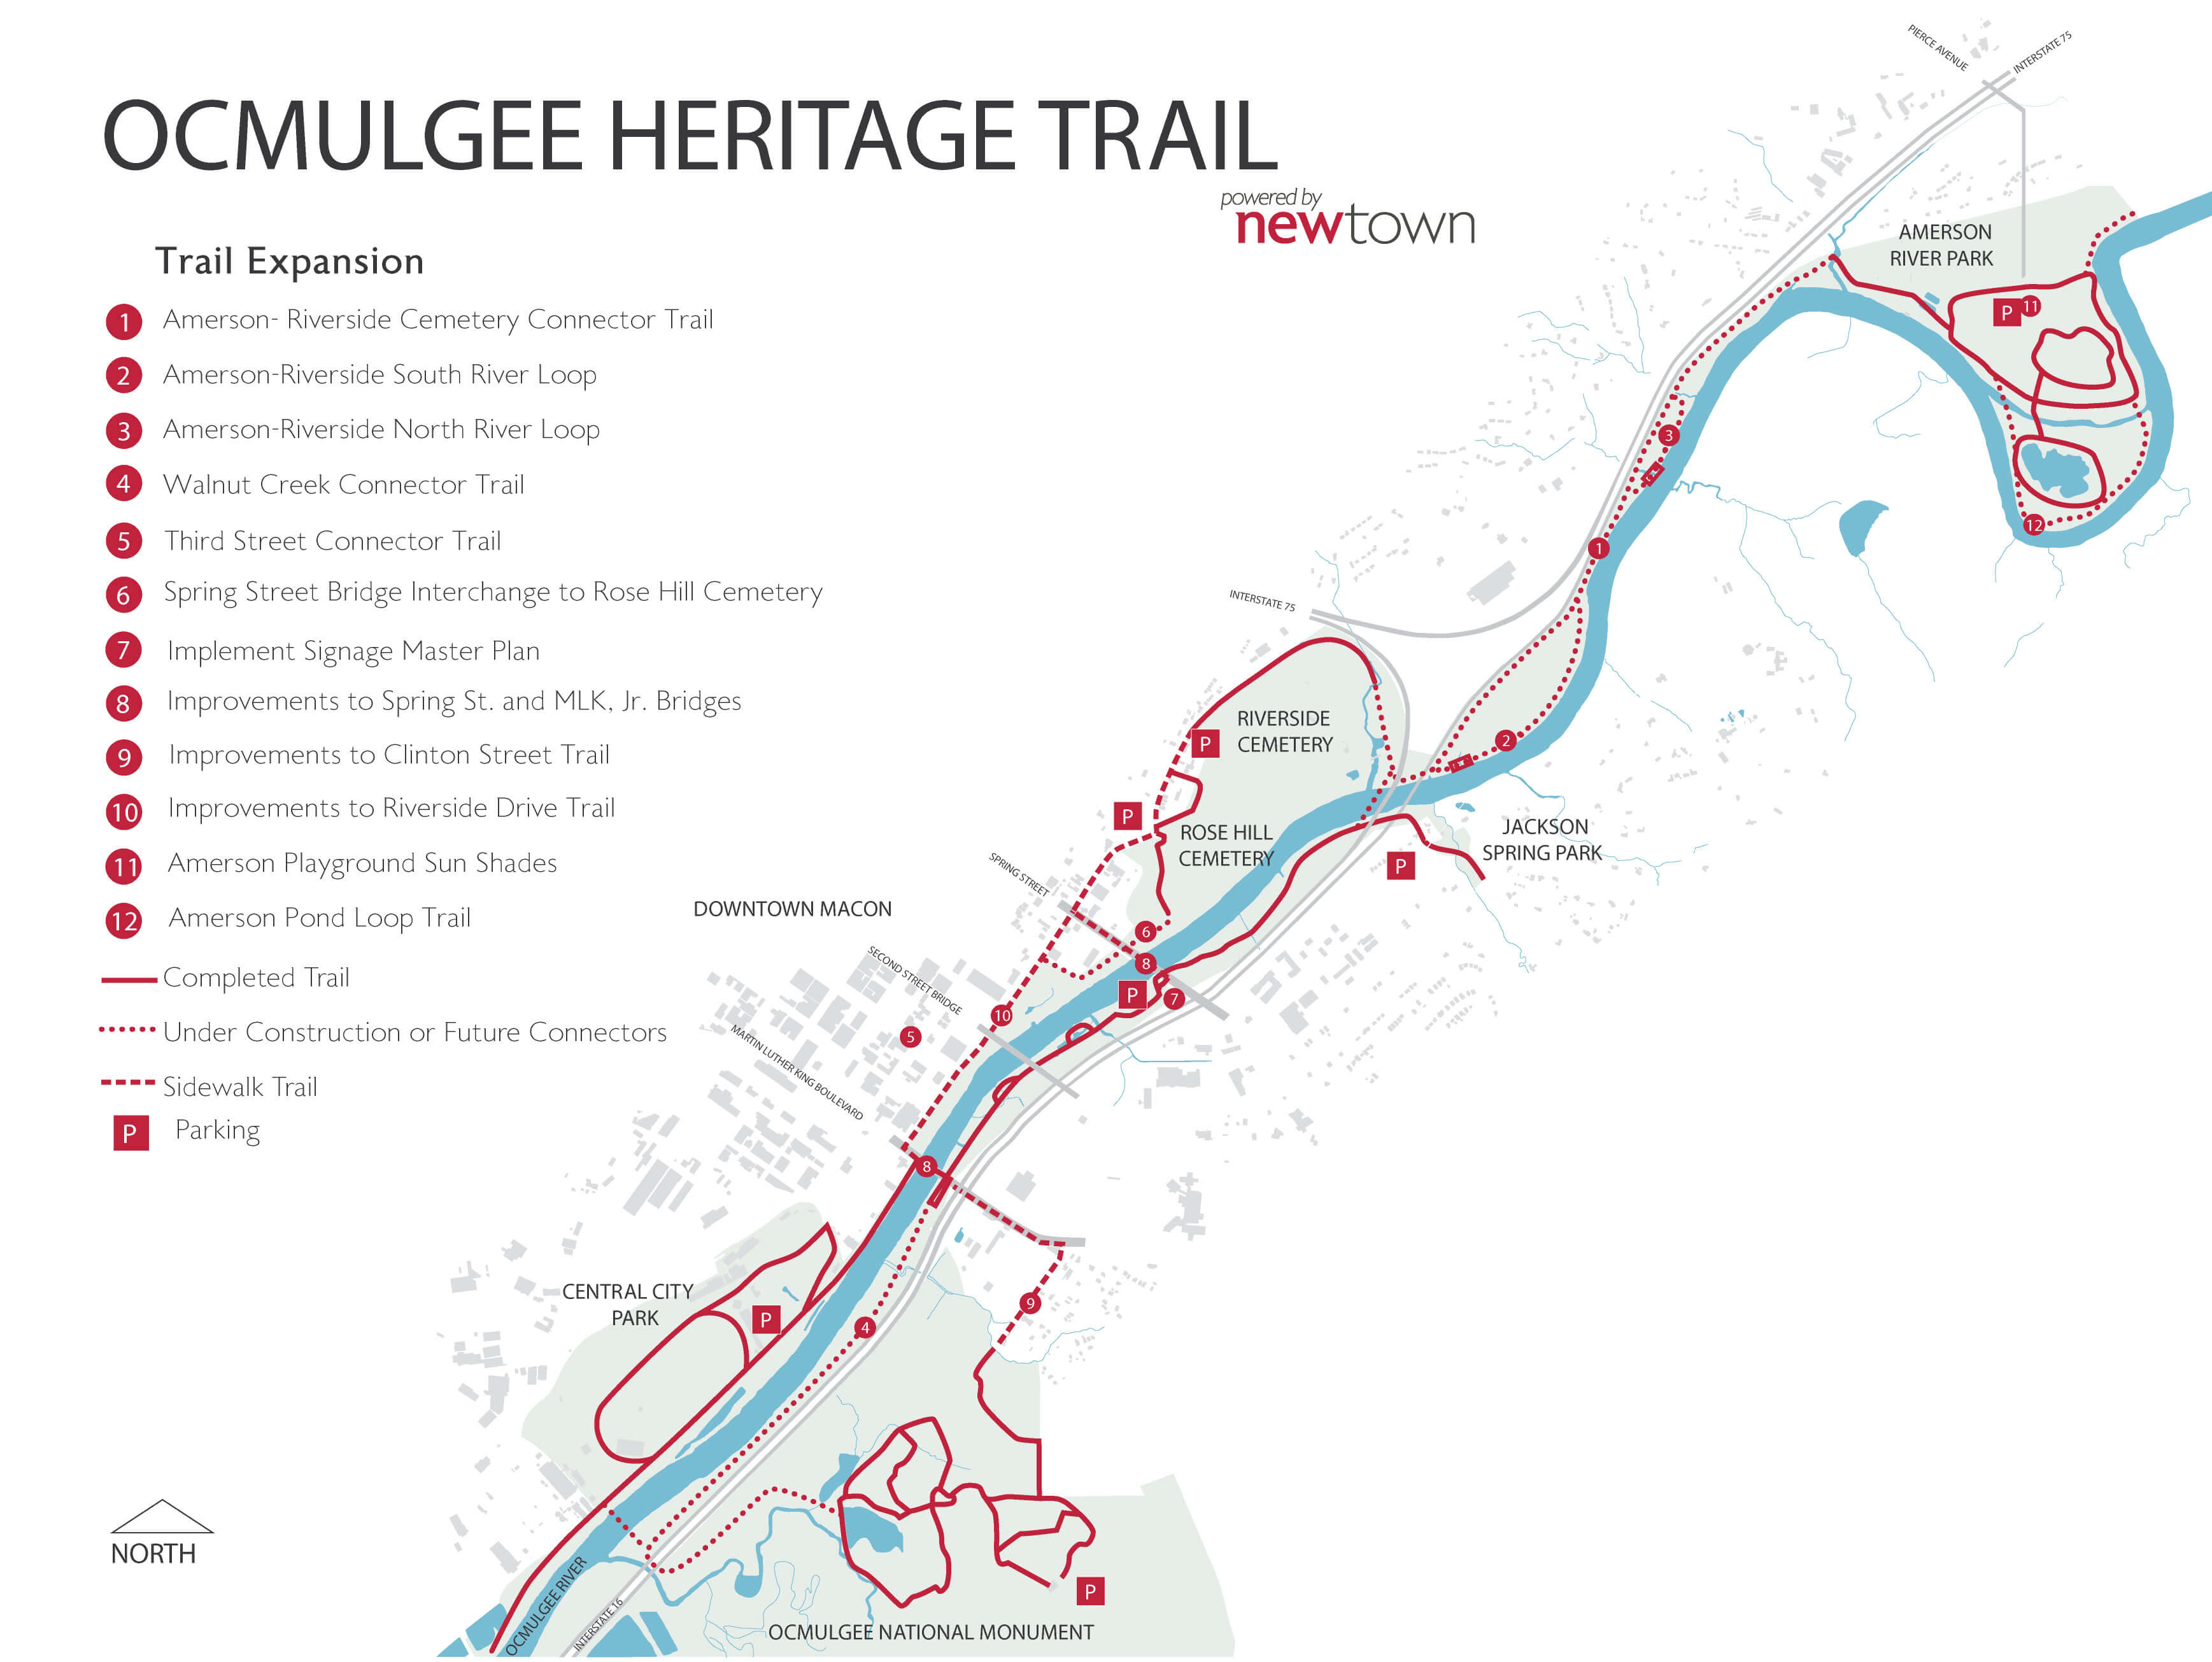 Ocmulgee Heritage Trail Newtown Macon